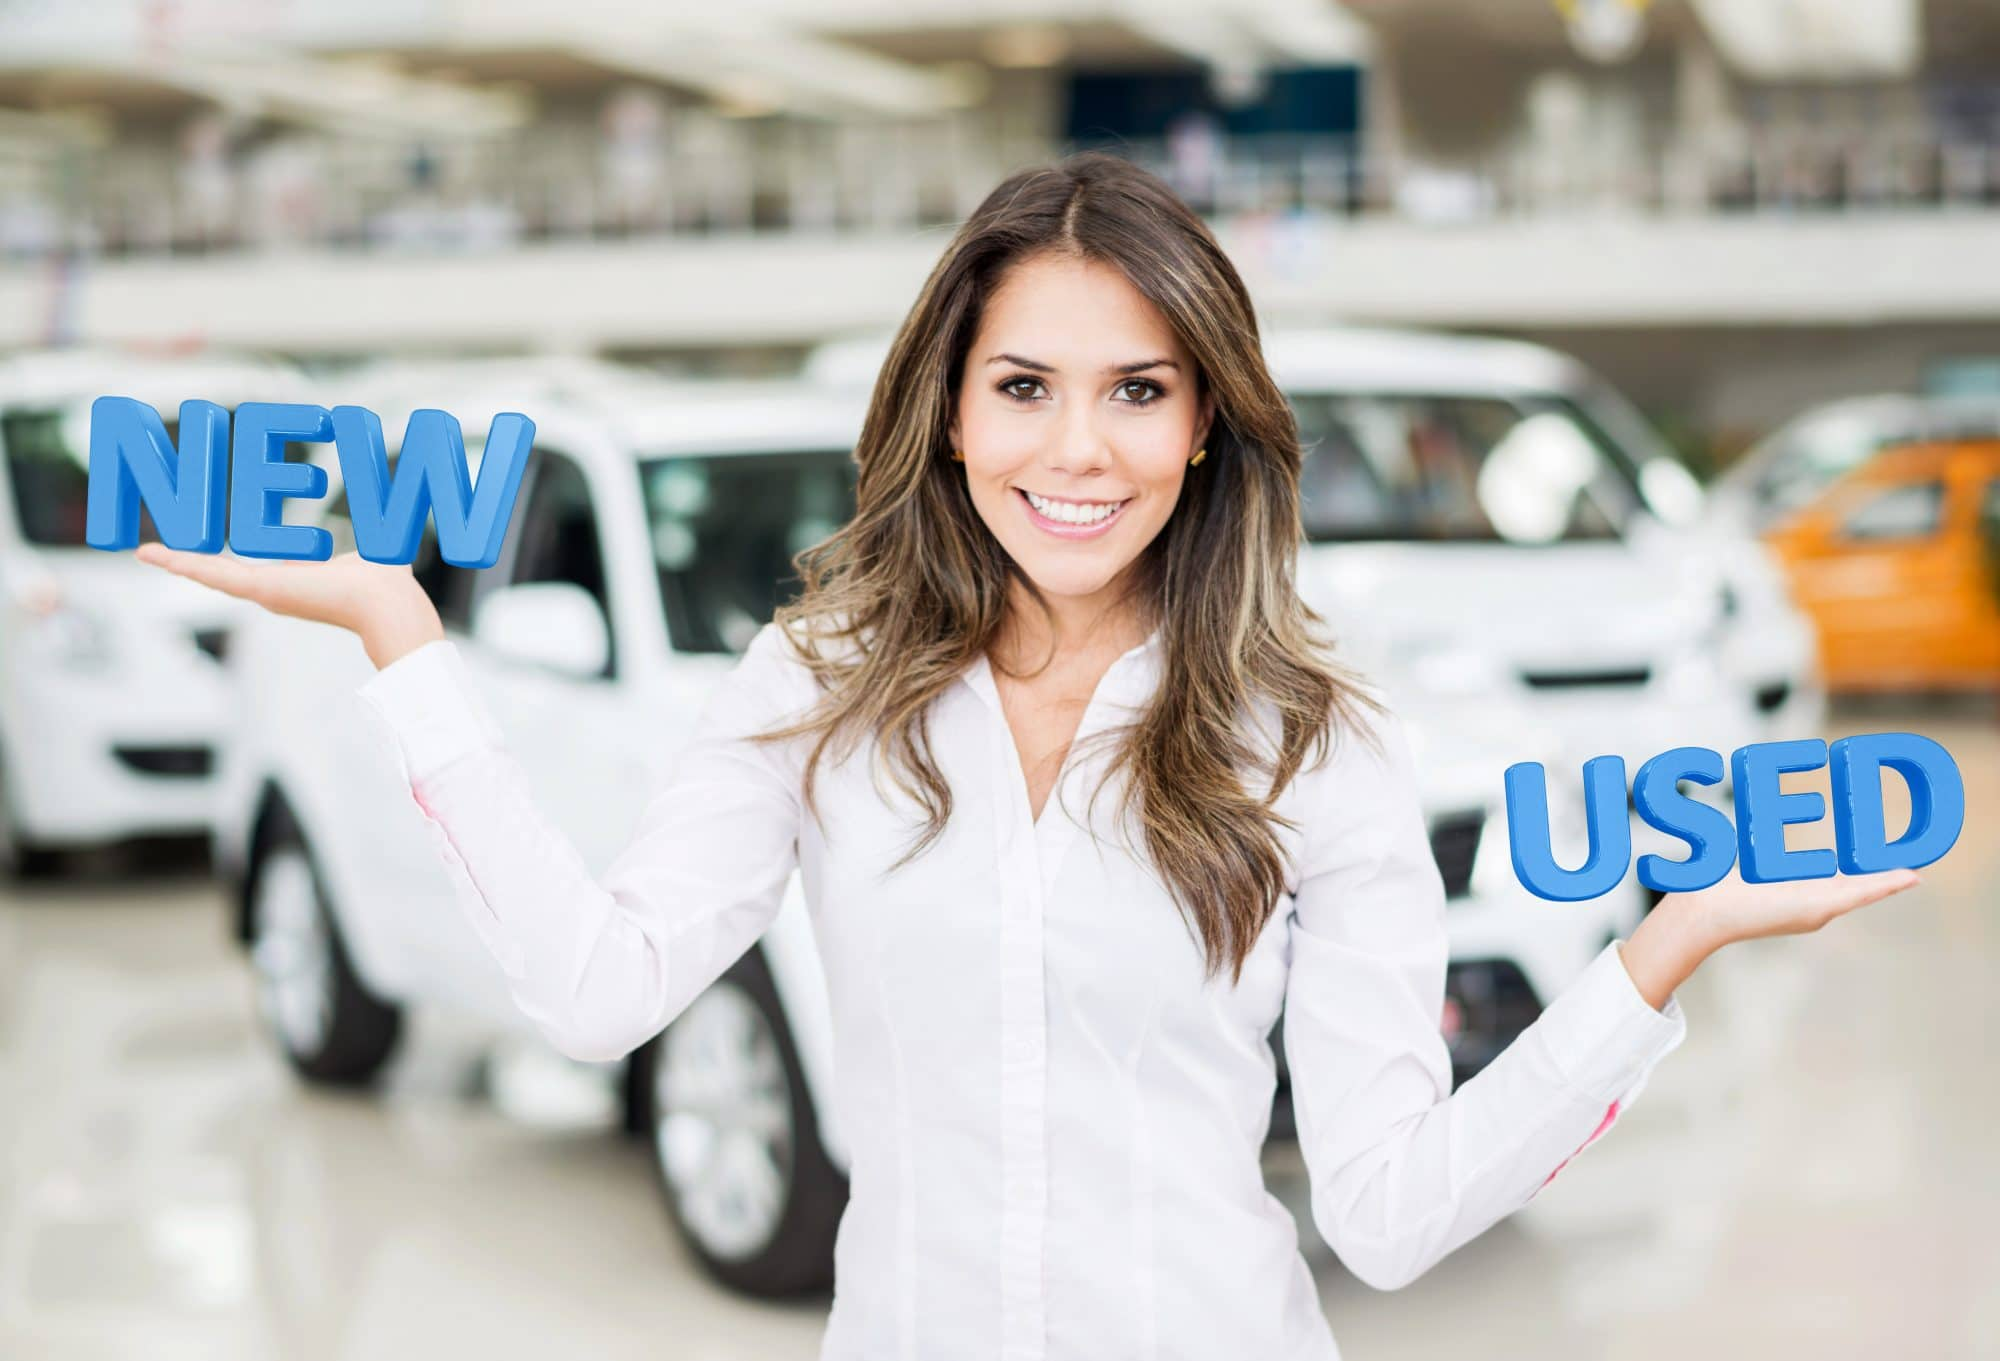 Image of woman in front of cars weighing the world new in one hand against used in the other